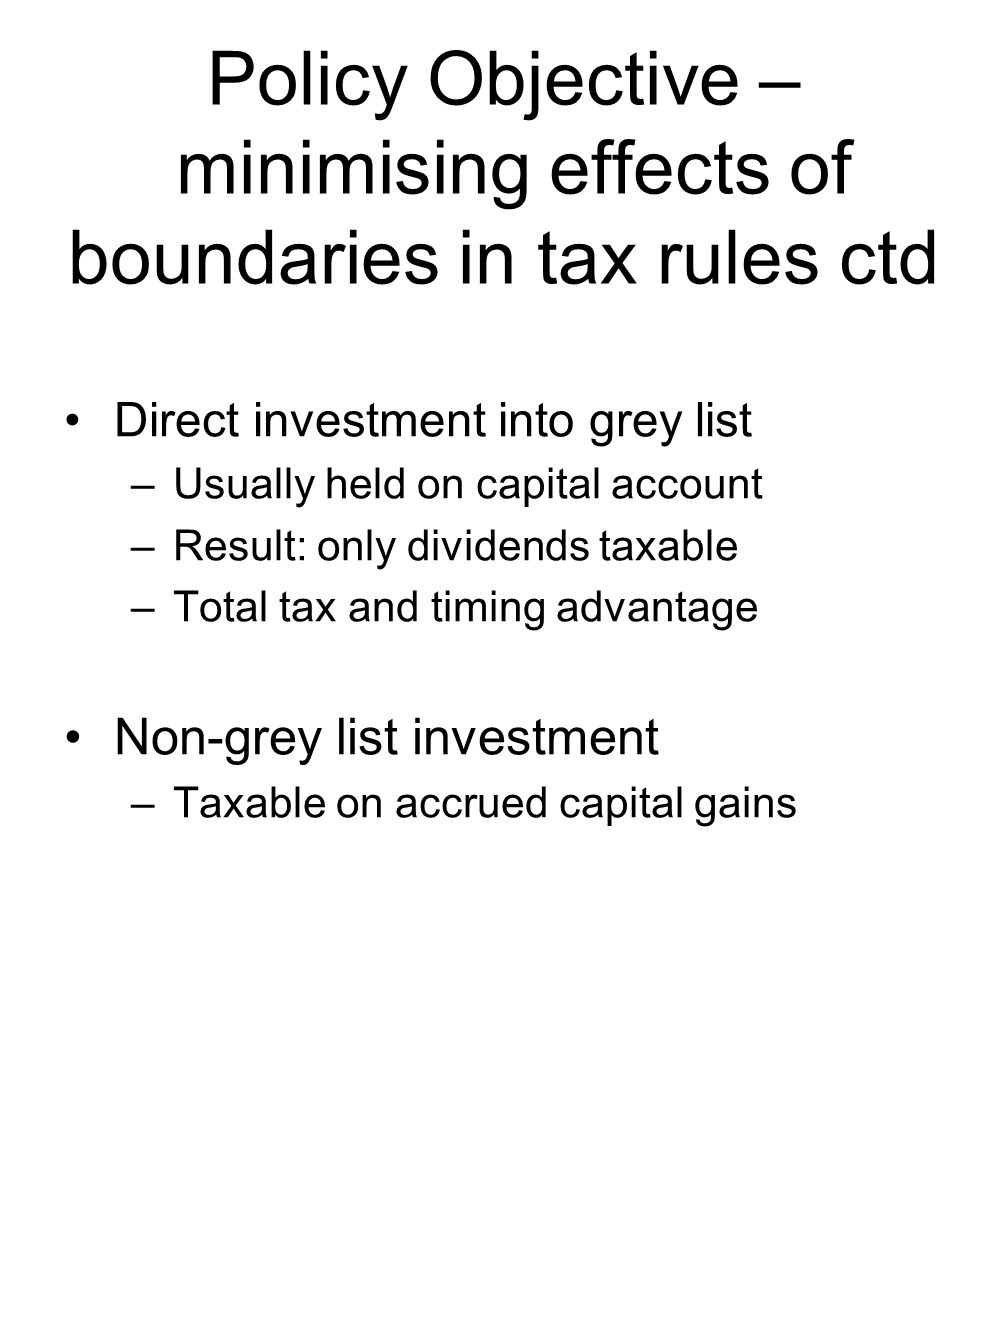 Policy Objective – minimising effects of boundaries in tax rules ctd Direct investment into grey list –Usually held on capital account –Result: only dividends taxable –Total tax and timing advantage Non-grey list investment –Taxable on accrued capital gains